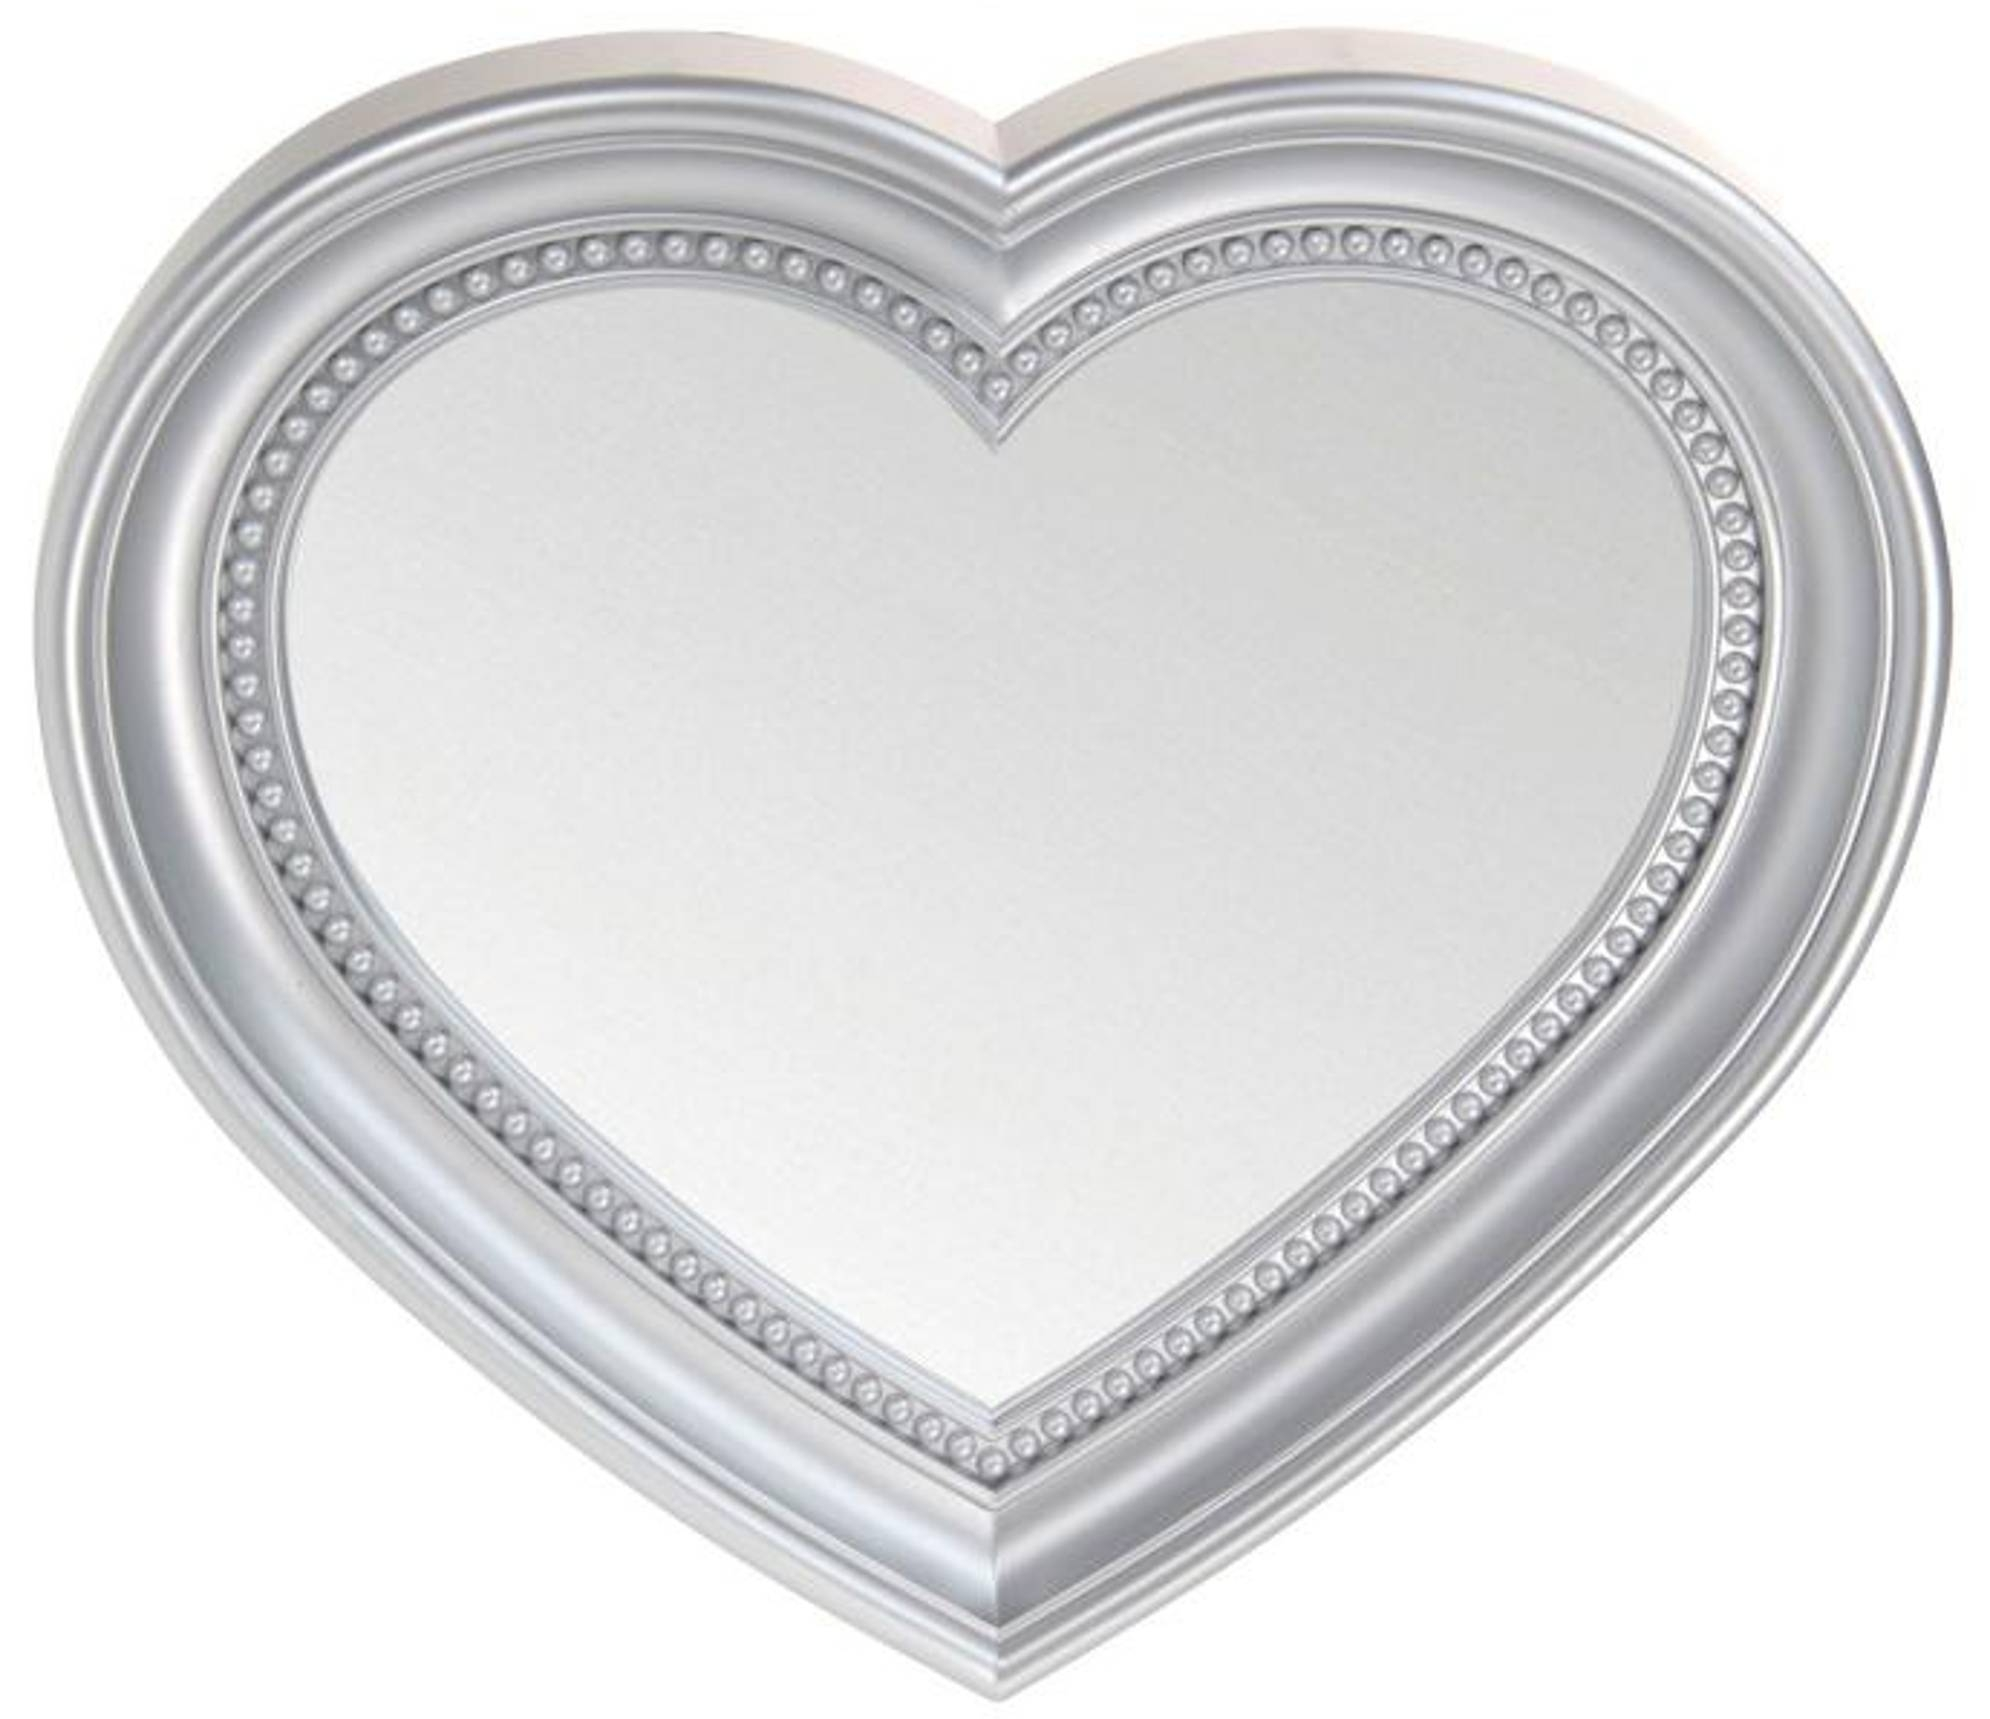 Heart Shaped Wall Hanging Mirror, Silver 45Cm | Blendboutique Inside Heart Wall Mirrors (View 12 of 25)